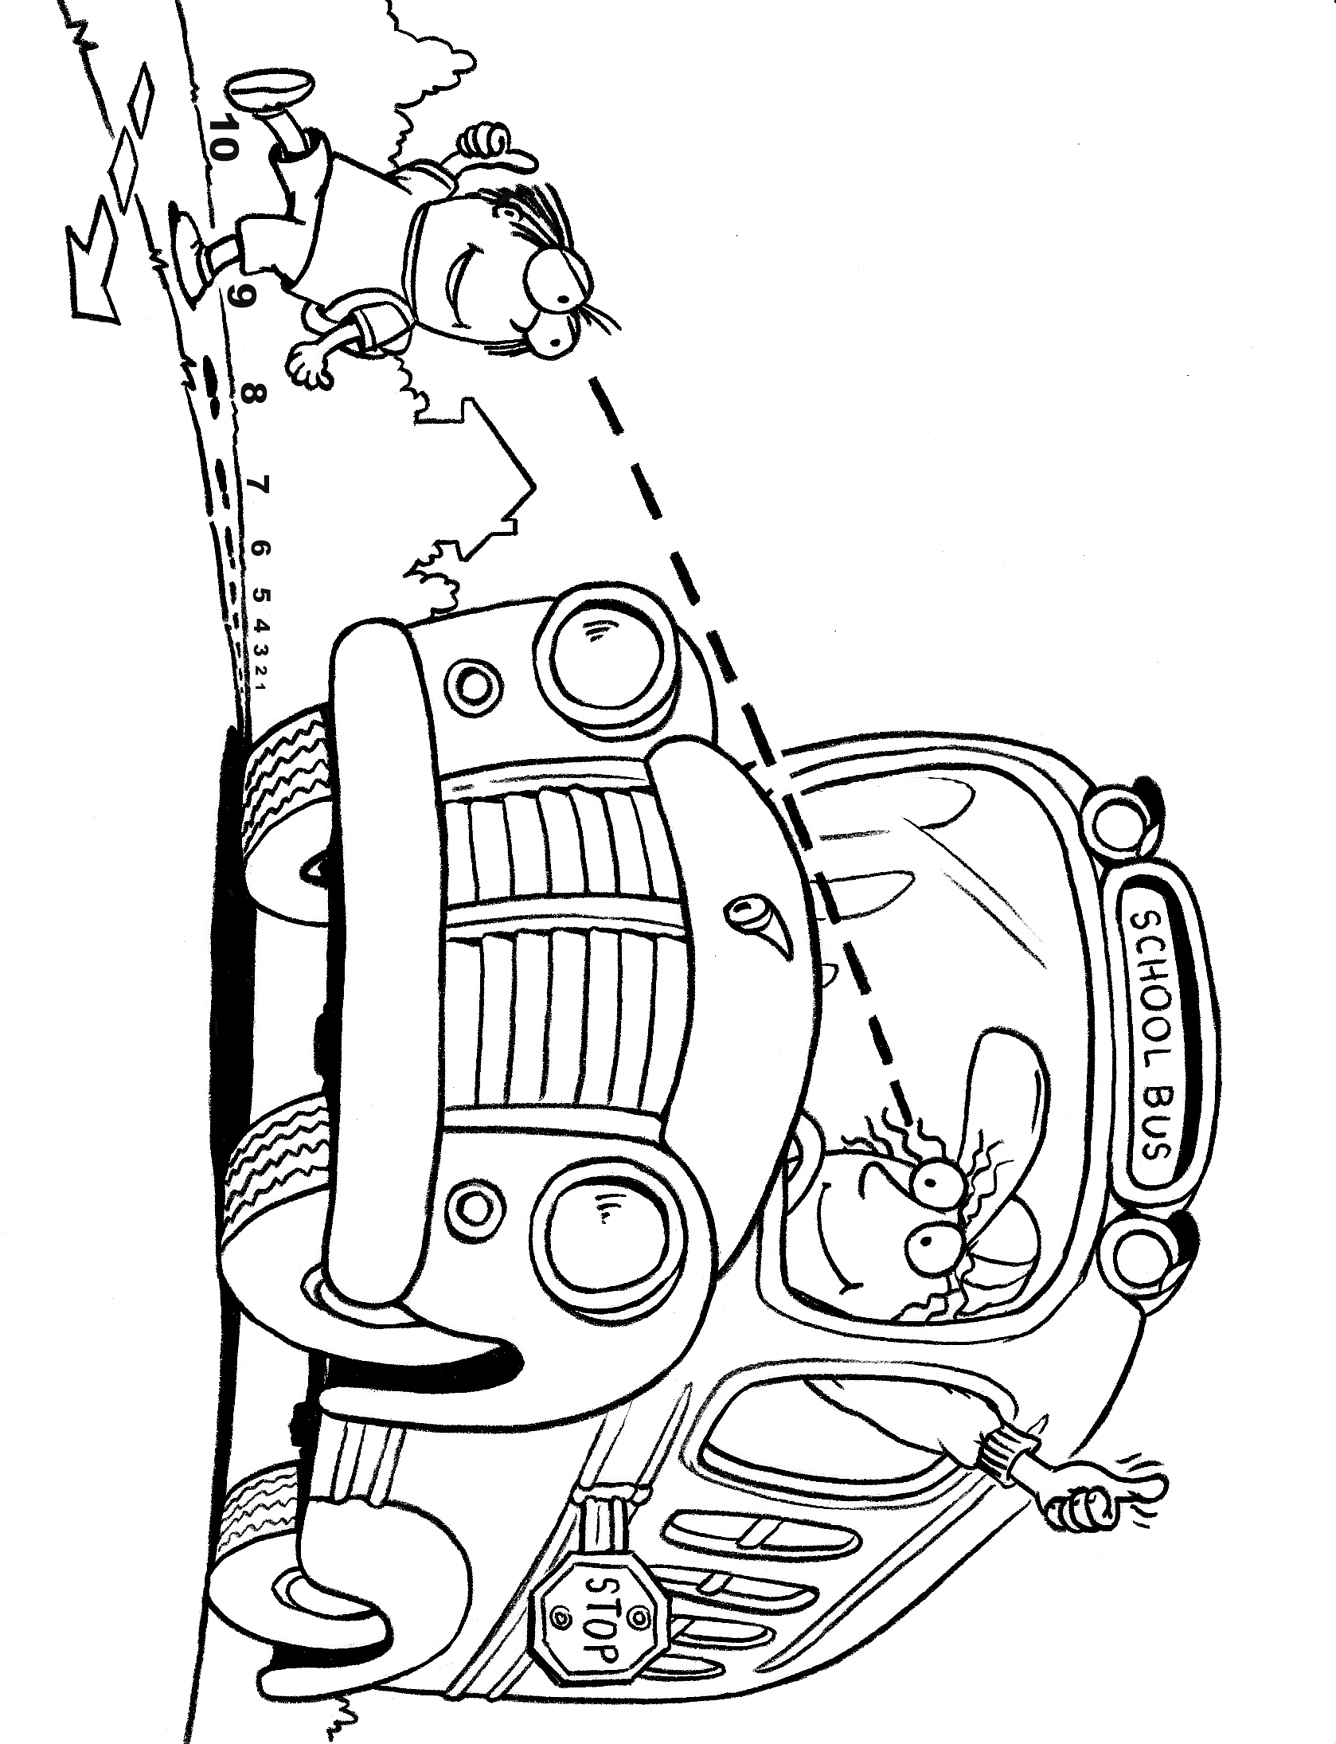 Swimming Pool Safety Coloring Sheets Coloring Pages